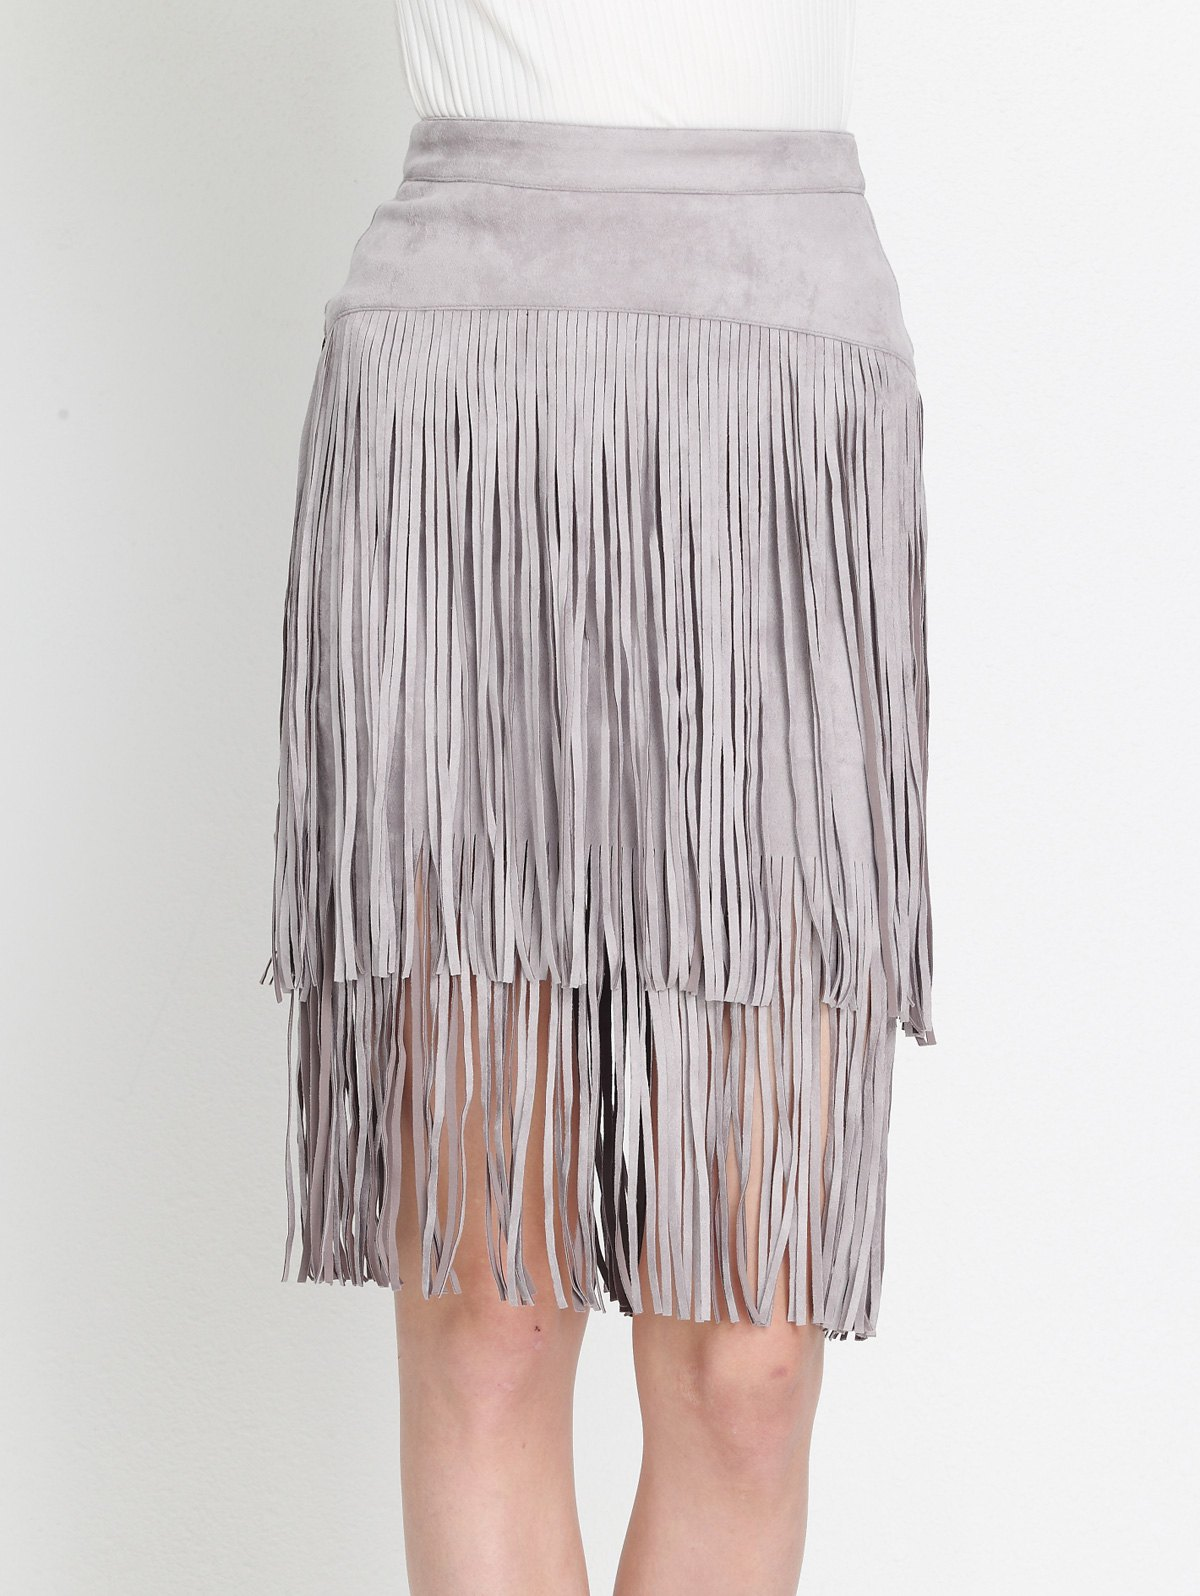 Hot High Waist Tiered Fringed Suede Skirt